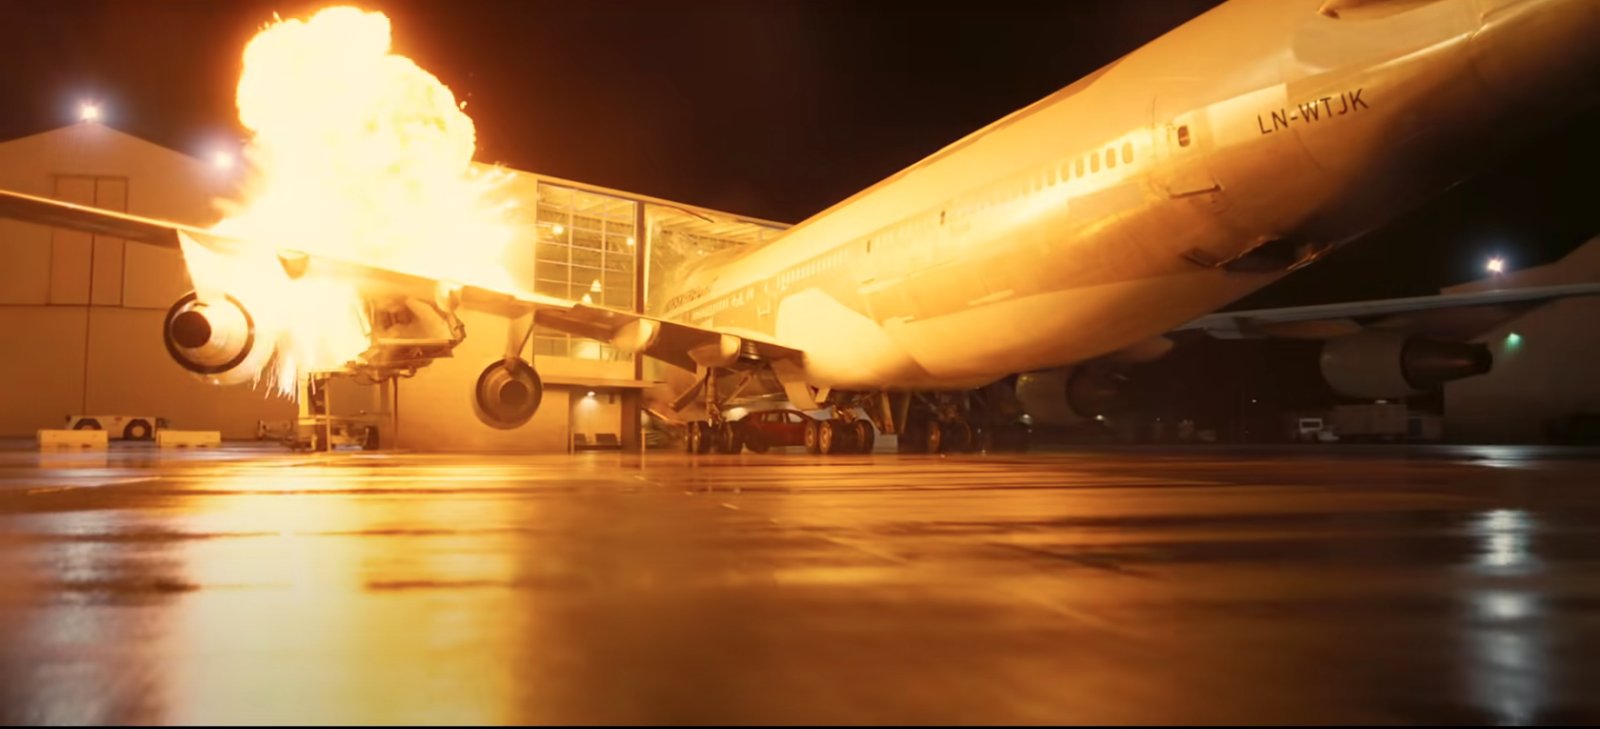 Christopher Nolan Blew Up Boeing 747 for Insane Tenet Stunt | IndieWire